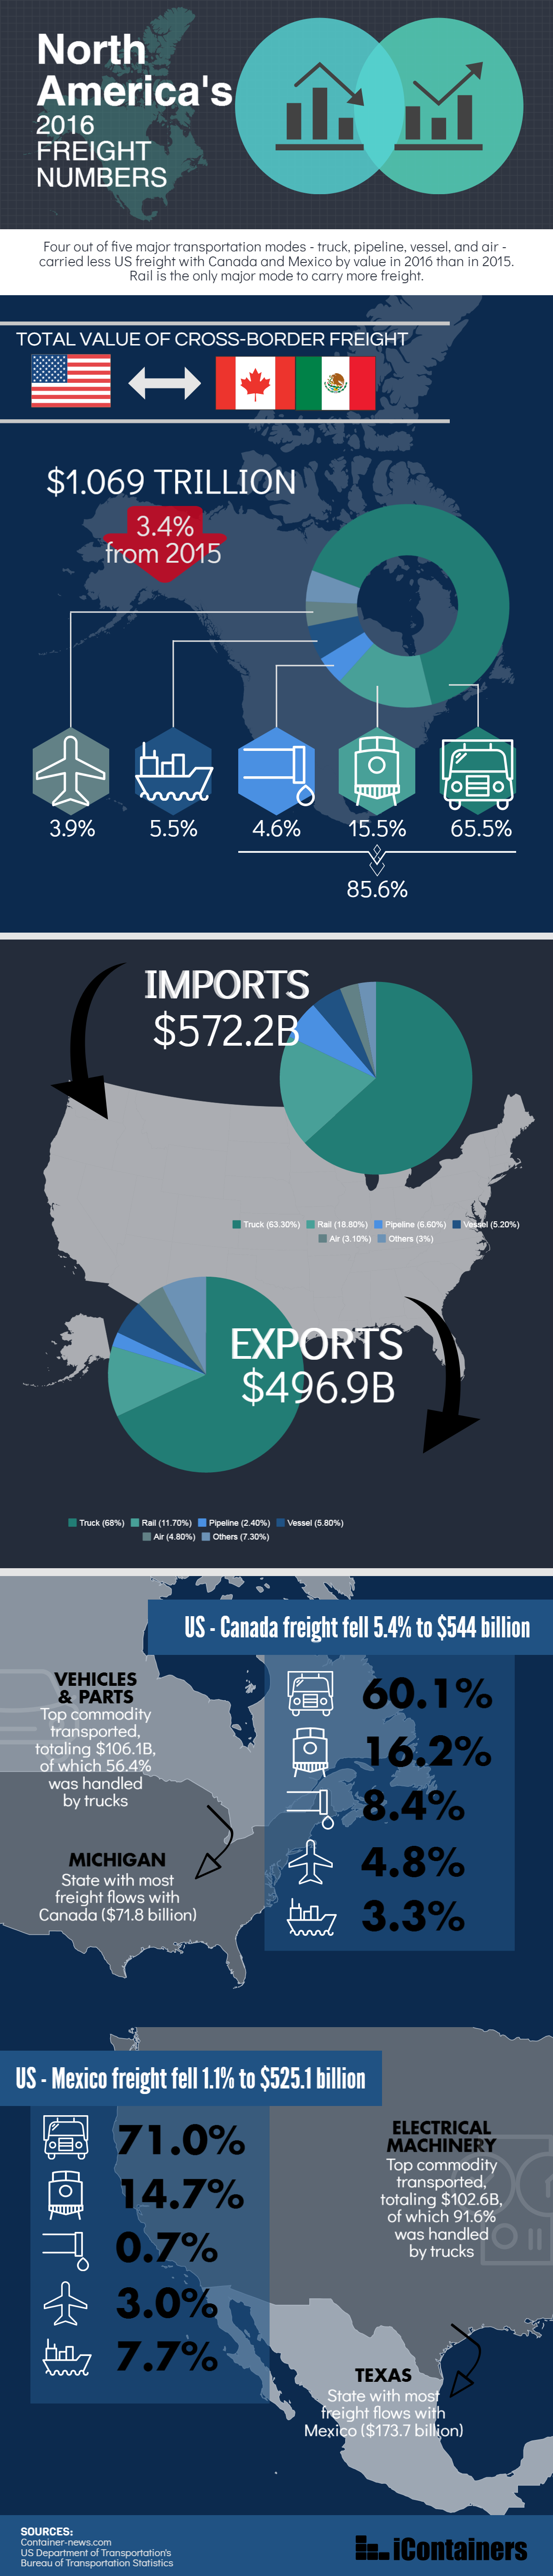 north america freight numbers infographic2